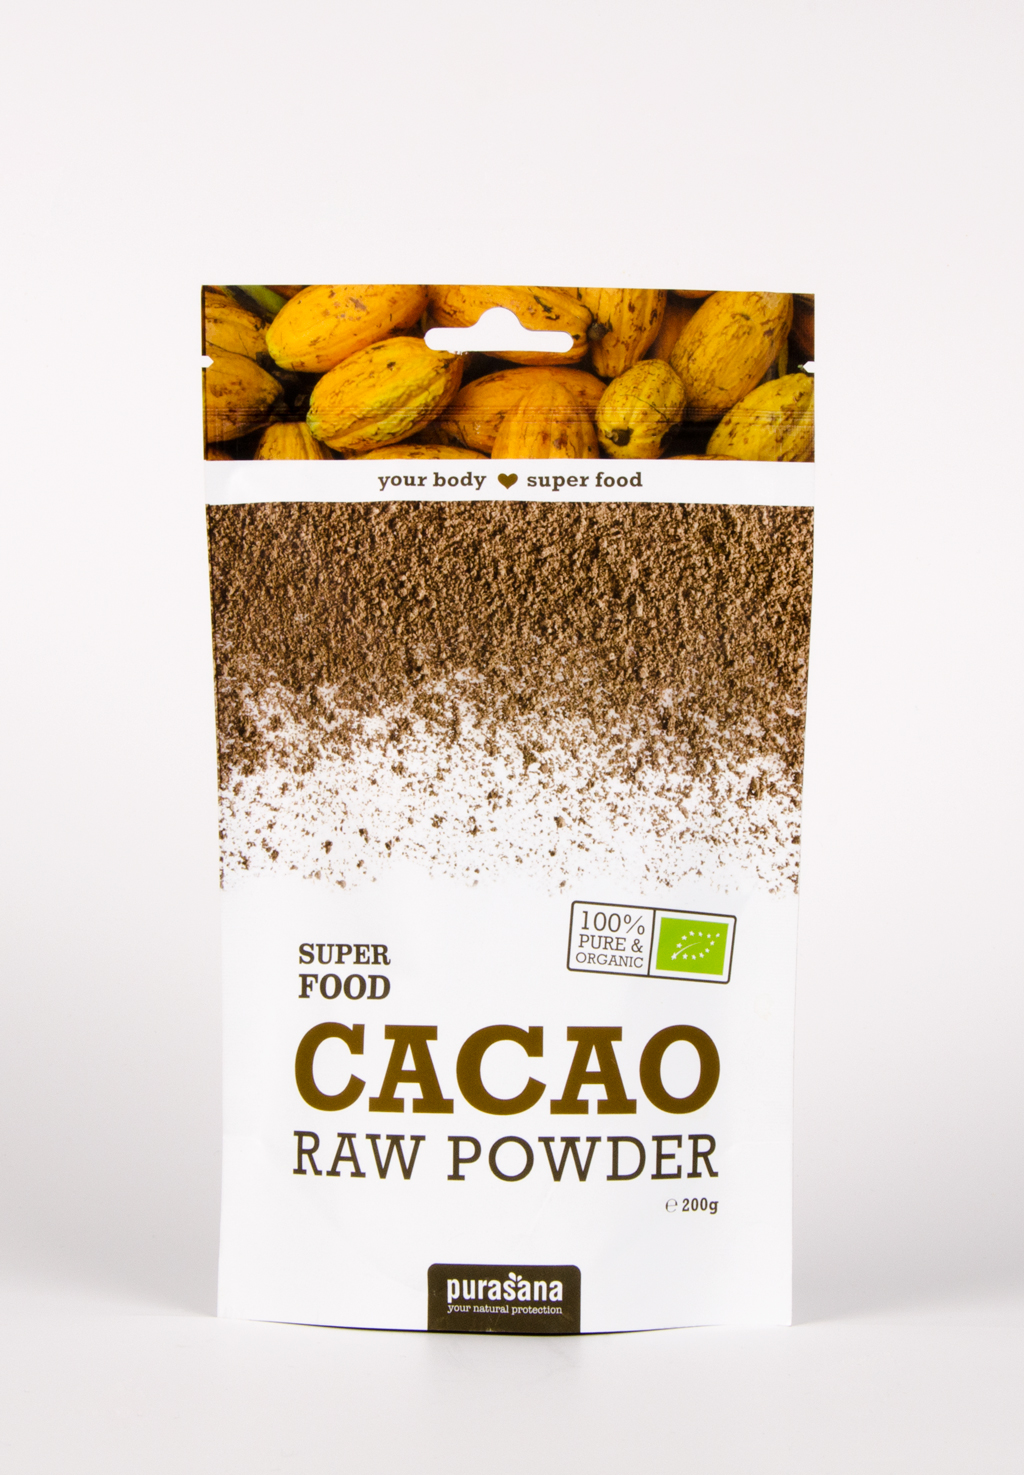 CACAO POWDER FRONT